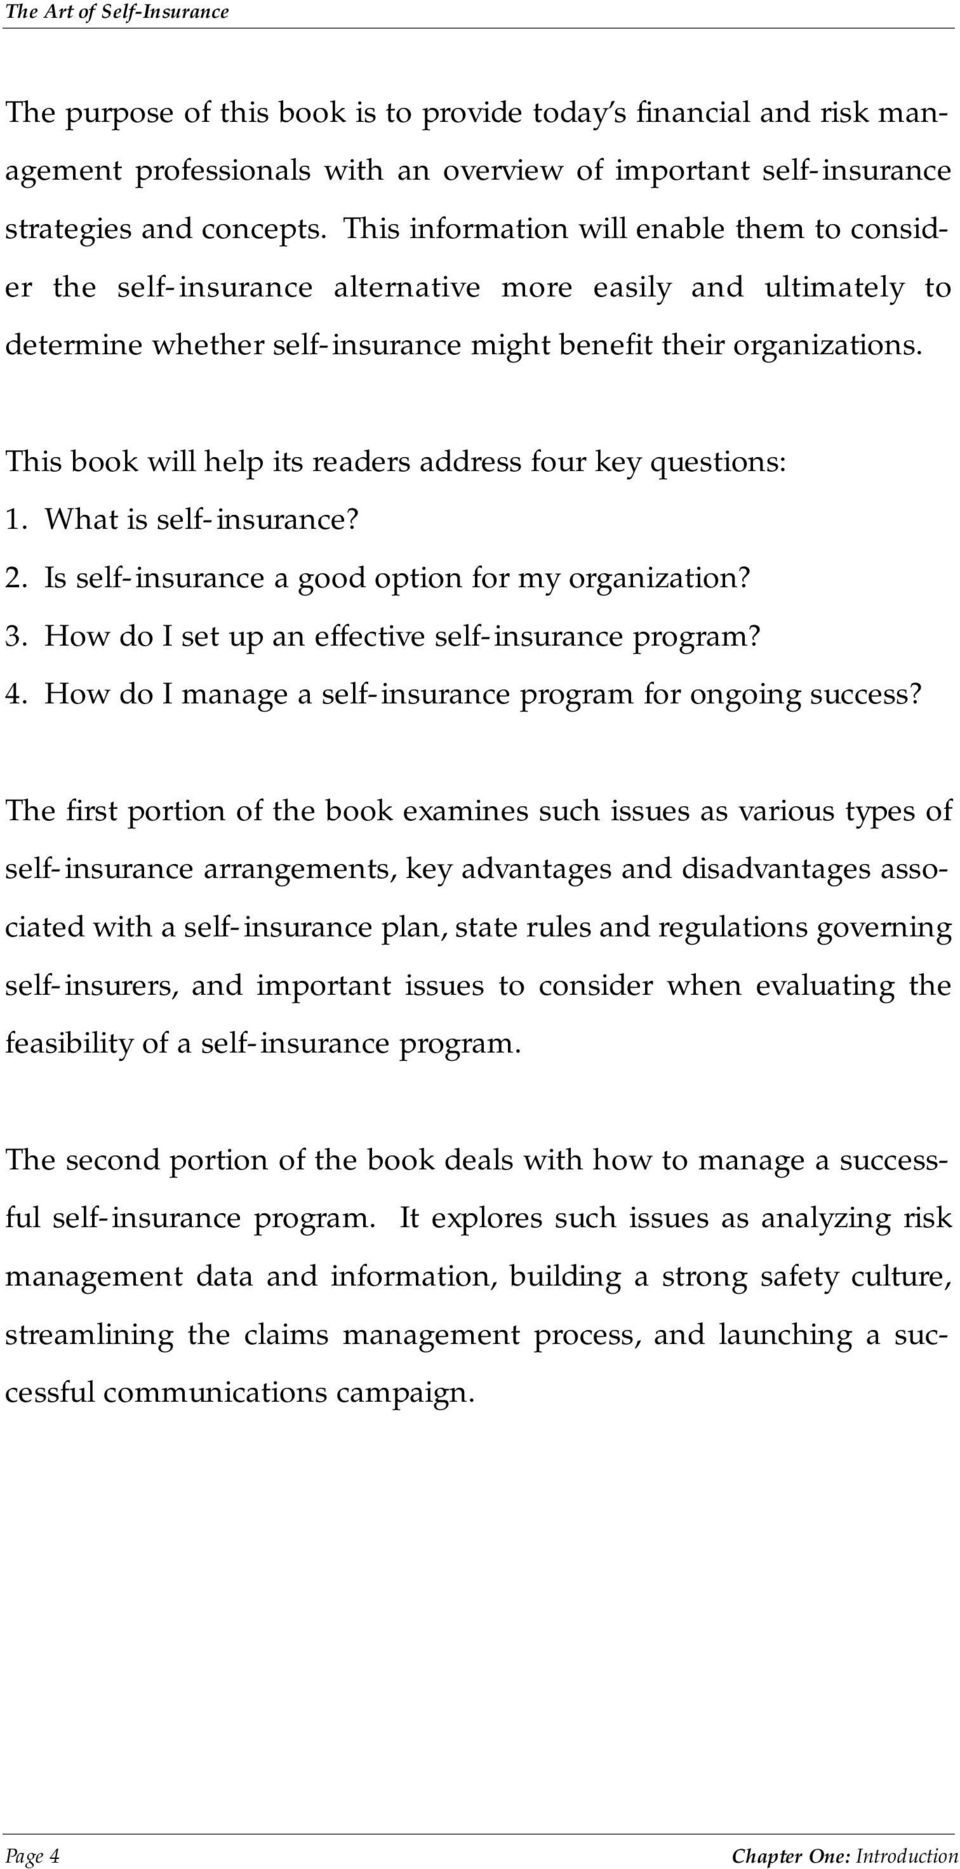 This book will help its readers address four key questions: 1. What is self-insurance? 2. Is self-insurance a good option for my organization? 3. How do I set up an effective self-insurance program?